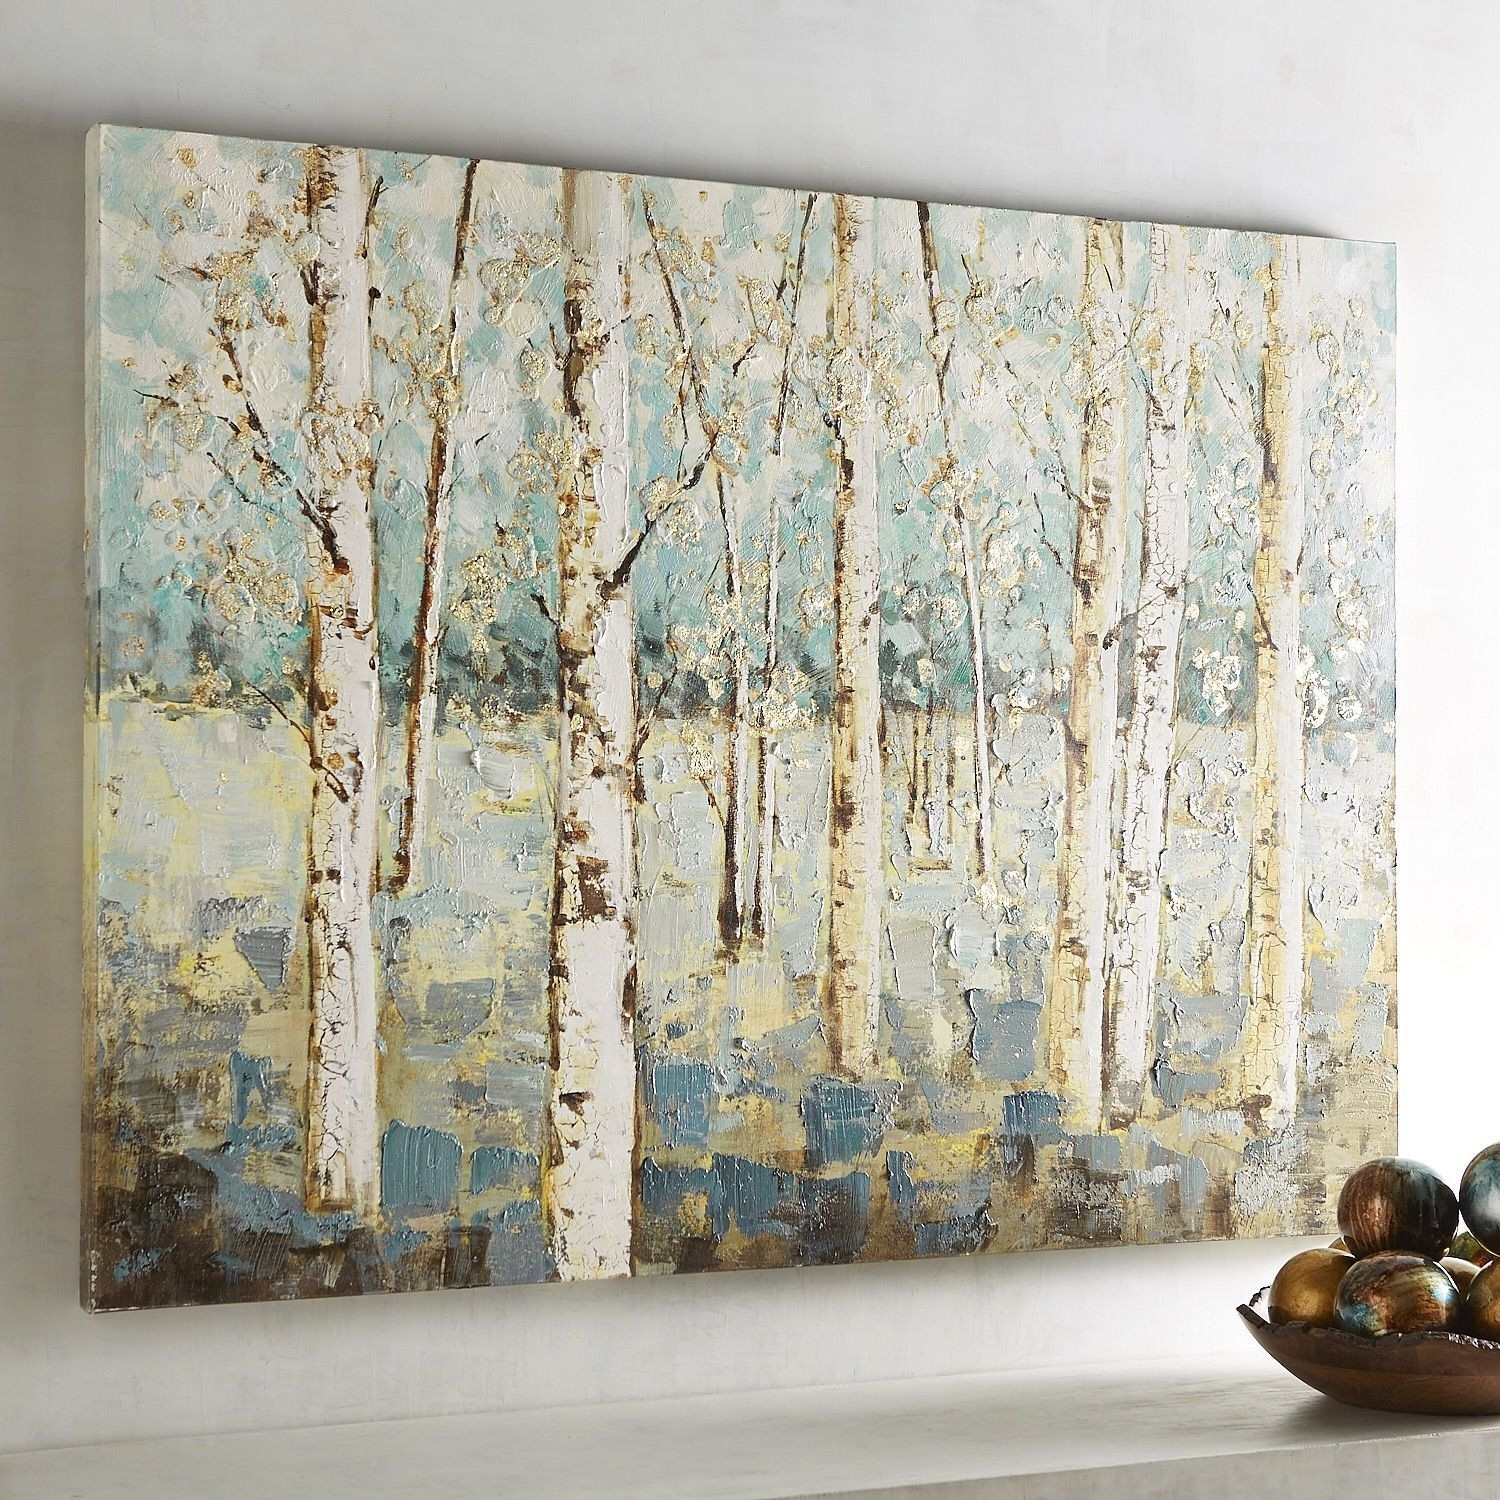 Of Blue Birch Tree Art Design Of Birch Tree Wall Art | Wall Art For Current Birch Tree Wall Art (View 12 of 20)